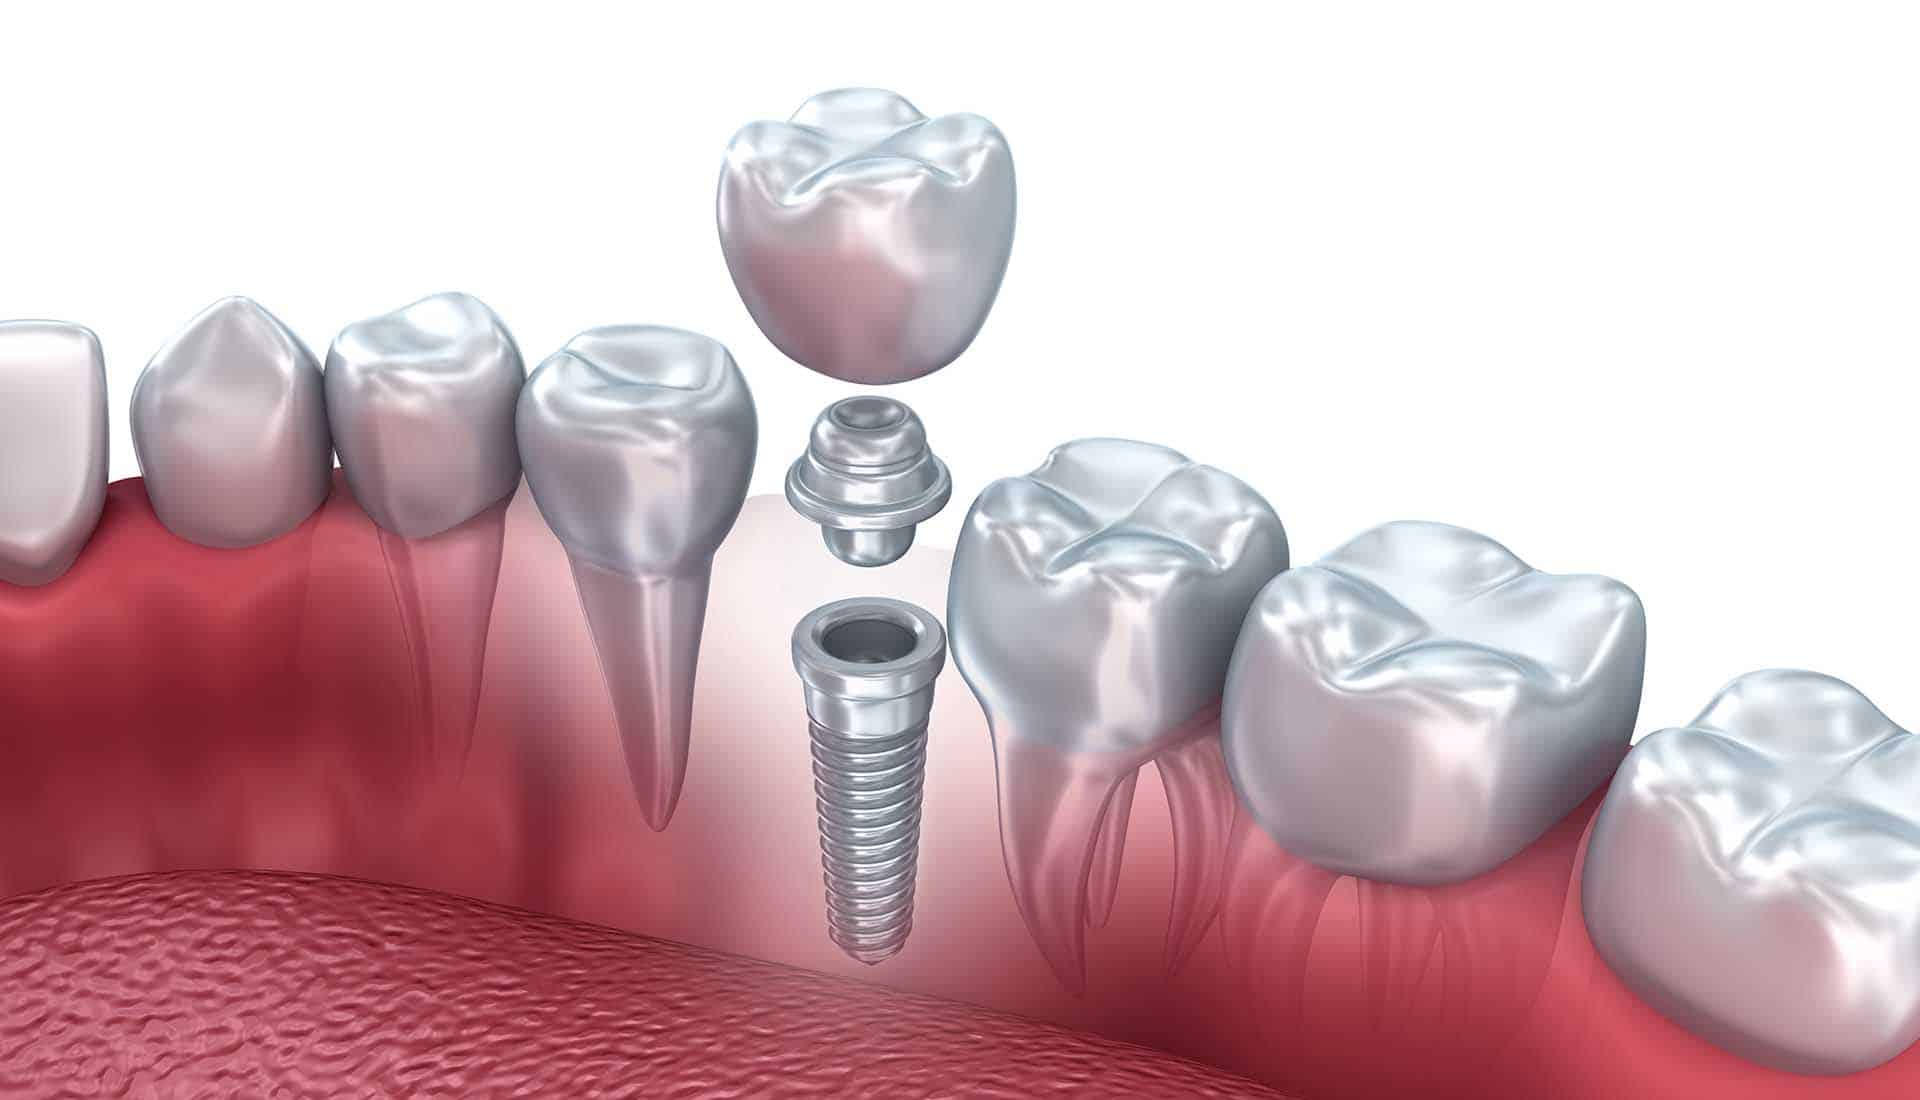 Tooth human implant, 3d illustration.